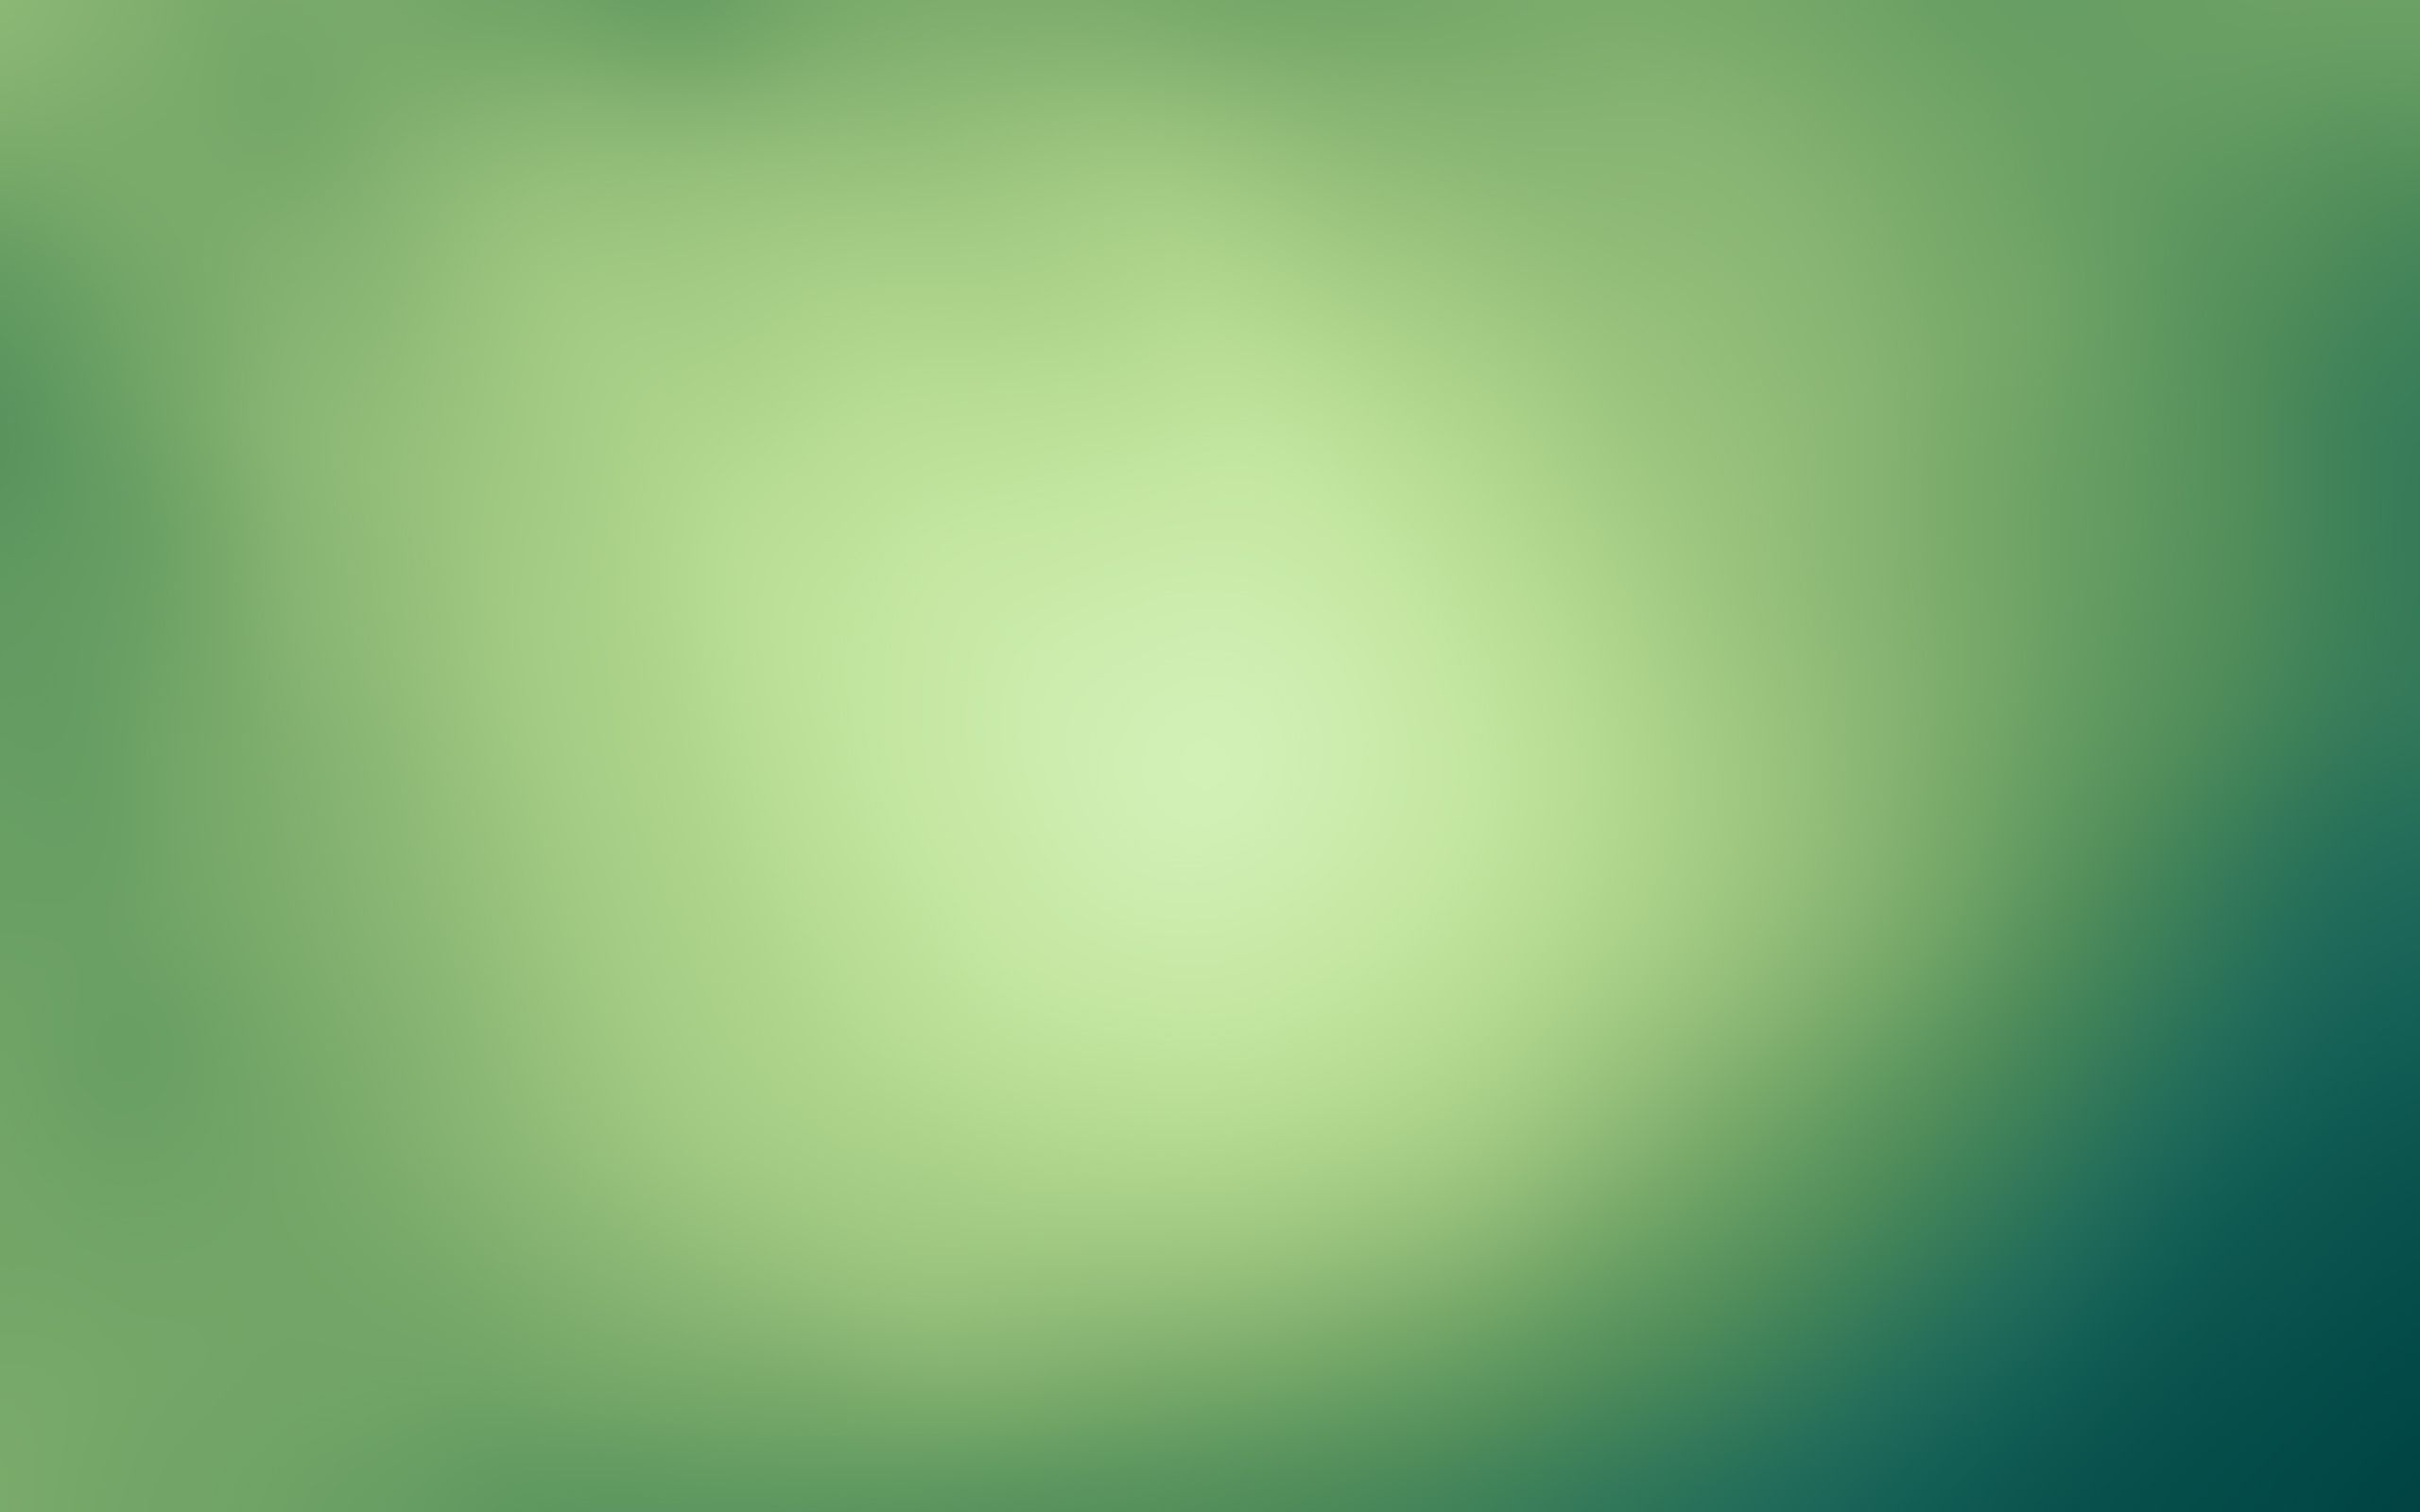 Free Solid Color Backgrounds Green Color Lightness And Darkness